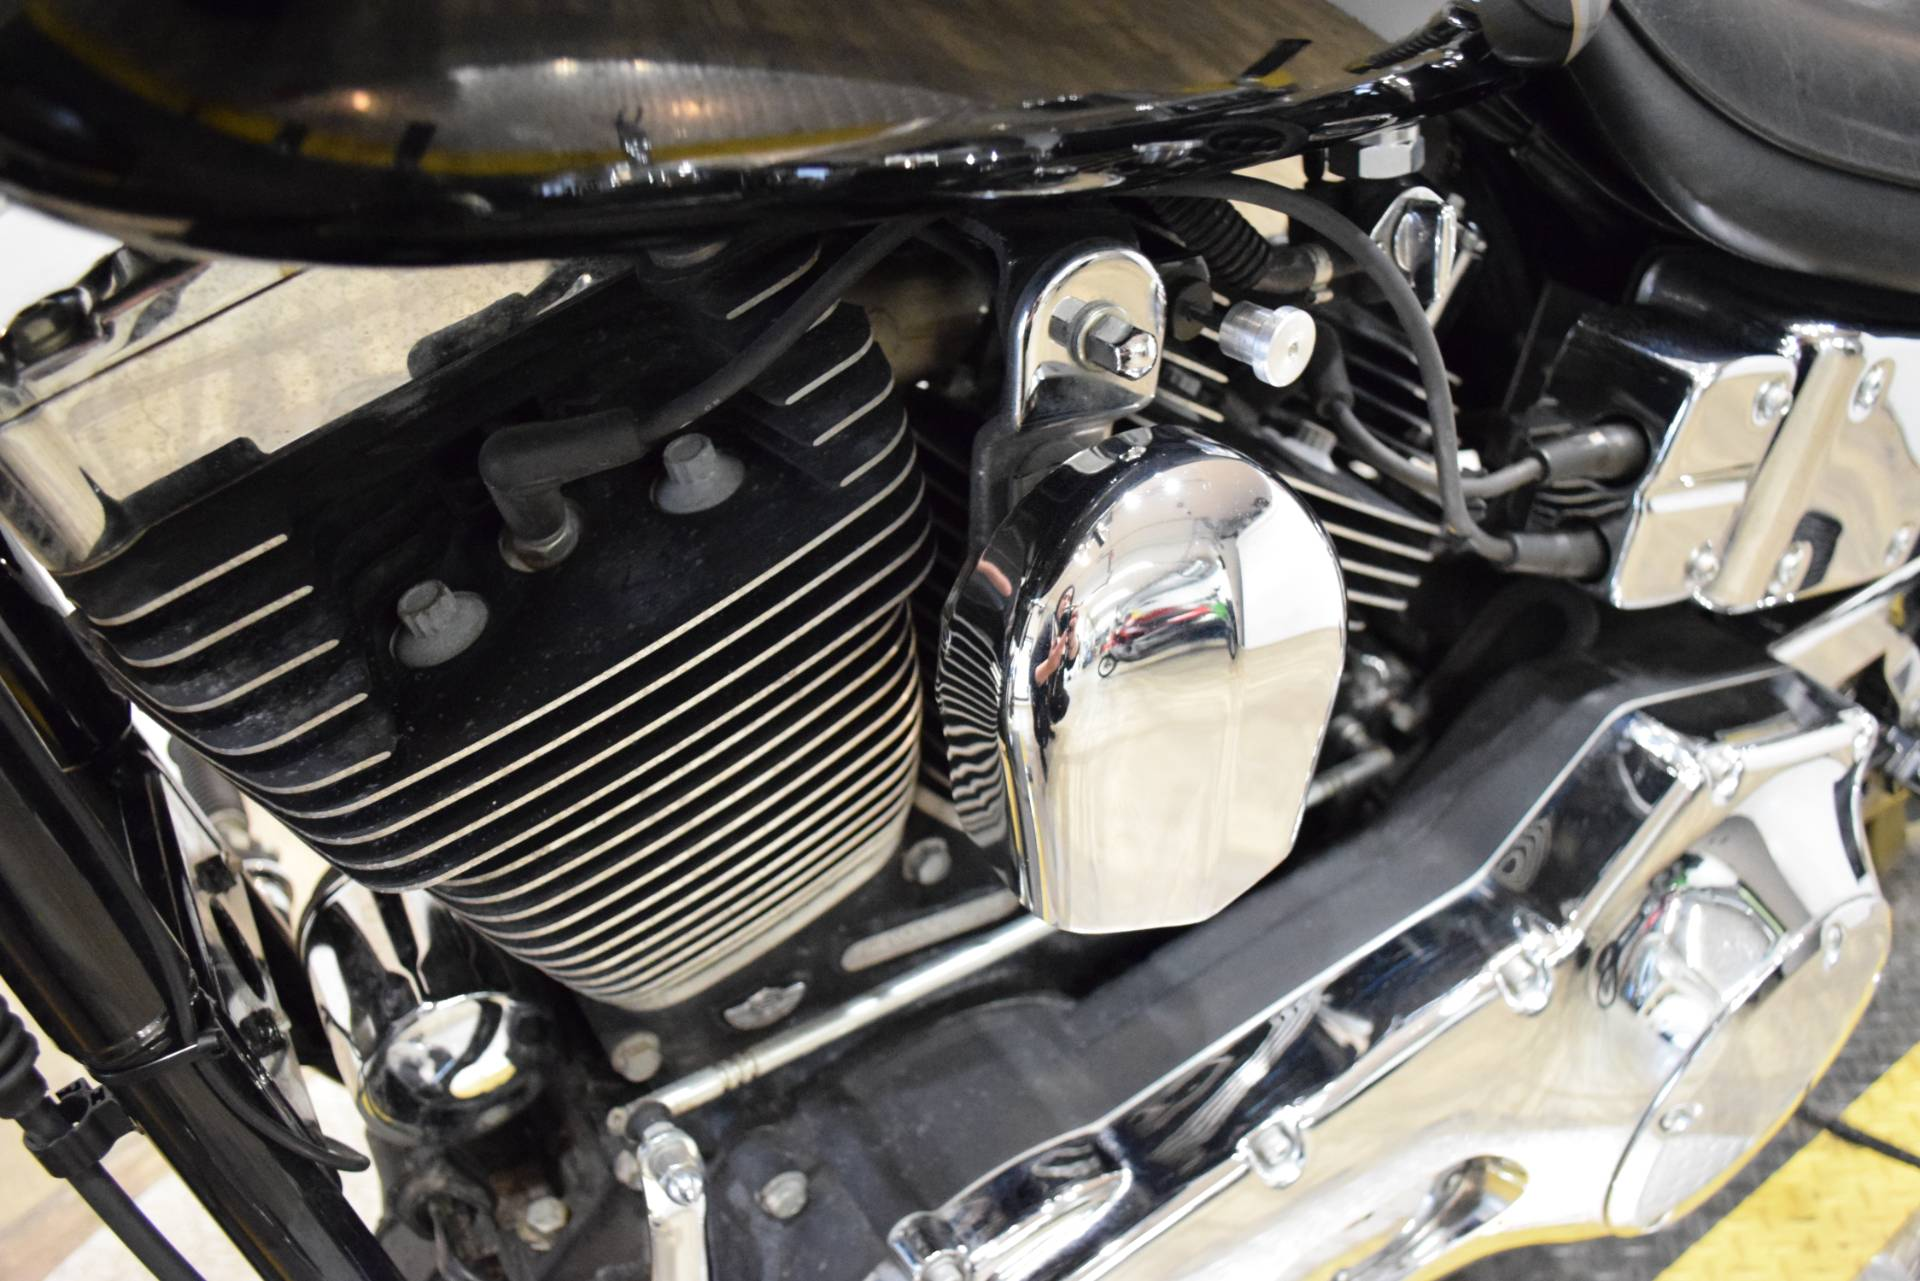 2003 Harley-Davidson FXDWG Dyna Wide Glide® in Wauconda, Illinois - Photo 19